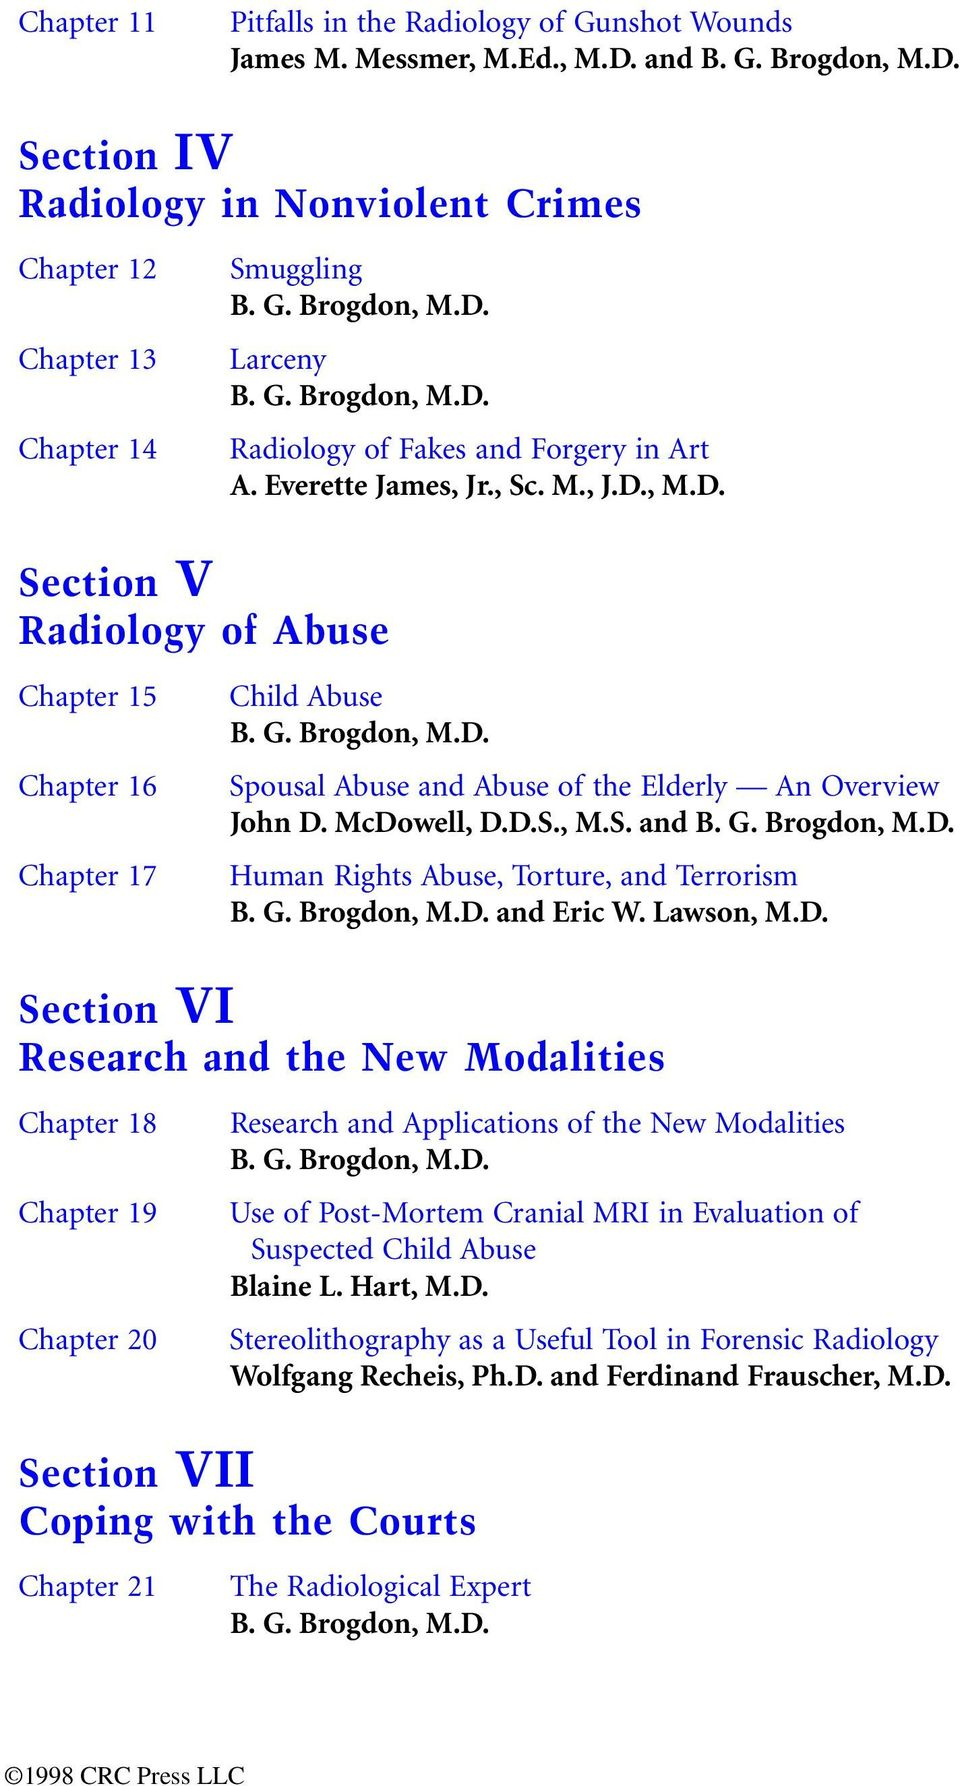 McDowell, D.D.S., M.S. and B. G. Brogdon, M.D. Human Rights Abuse, Torture, and Terrorism B. G. Brogdon, M.D. and Eric W. Lawson, M.D. Section VI Research and the New Modalities Chapter 18 Chapter 19 Chapter 20 Research and Applications of the New Modalities B.